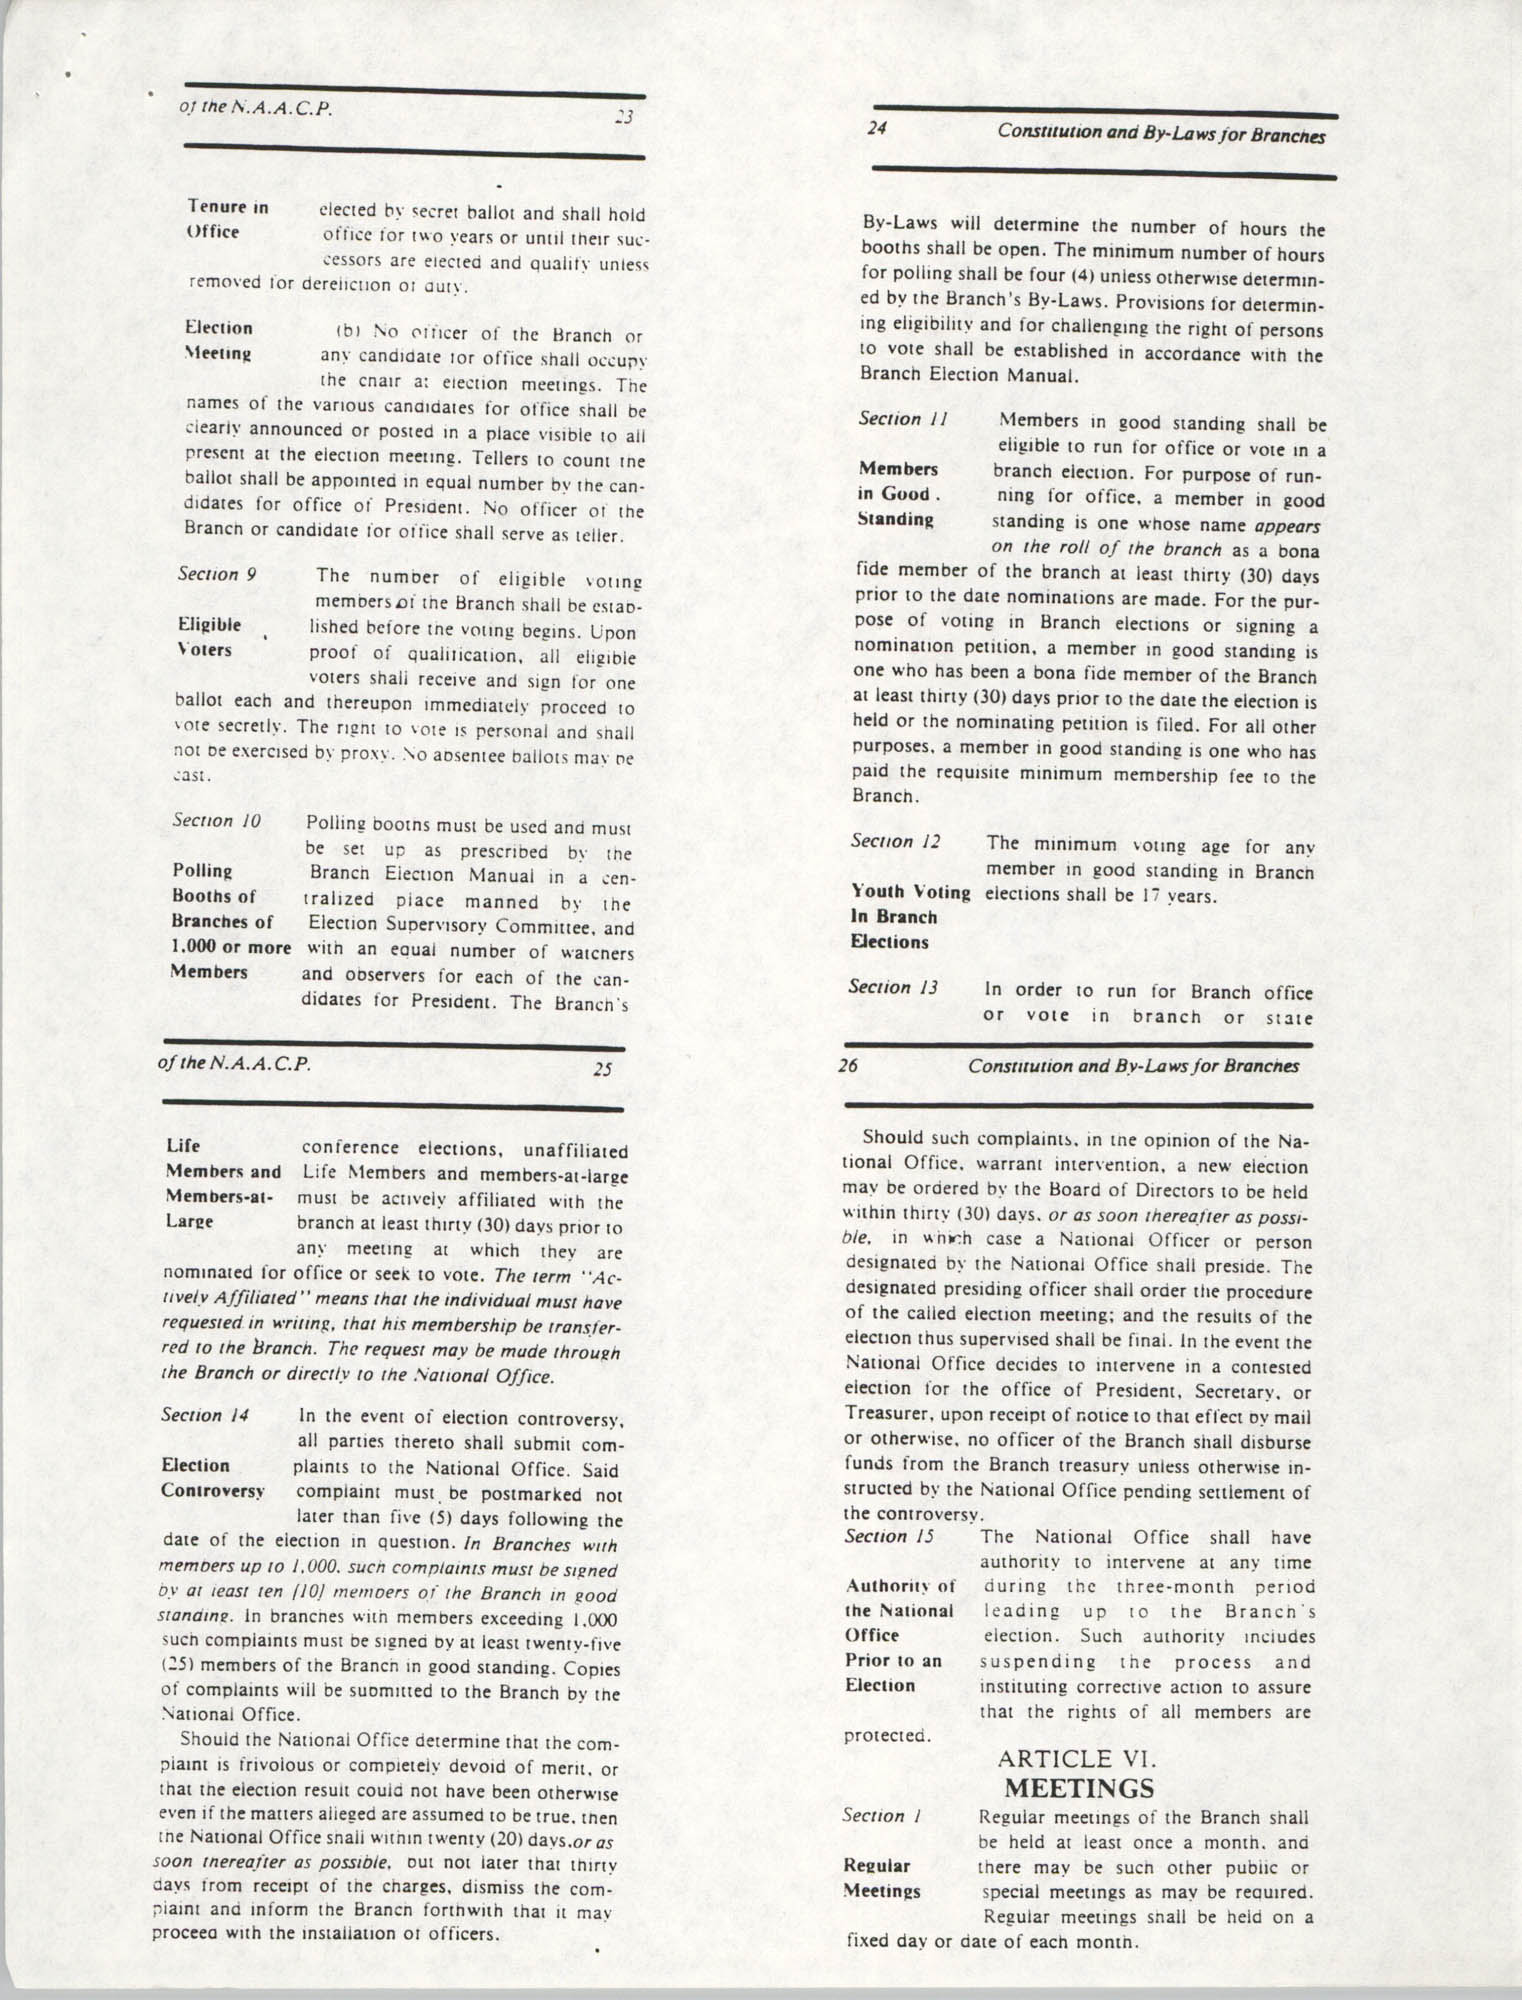 Constitution and By-Laws for Branches of the NAACP, May 1988, Pages 23-26